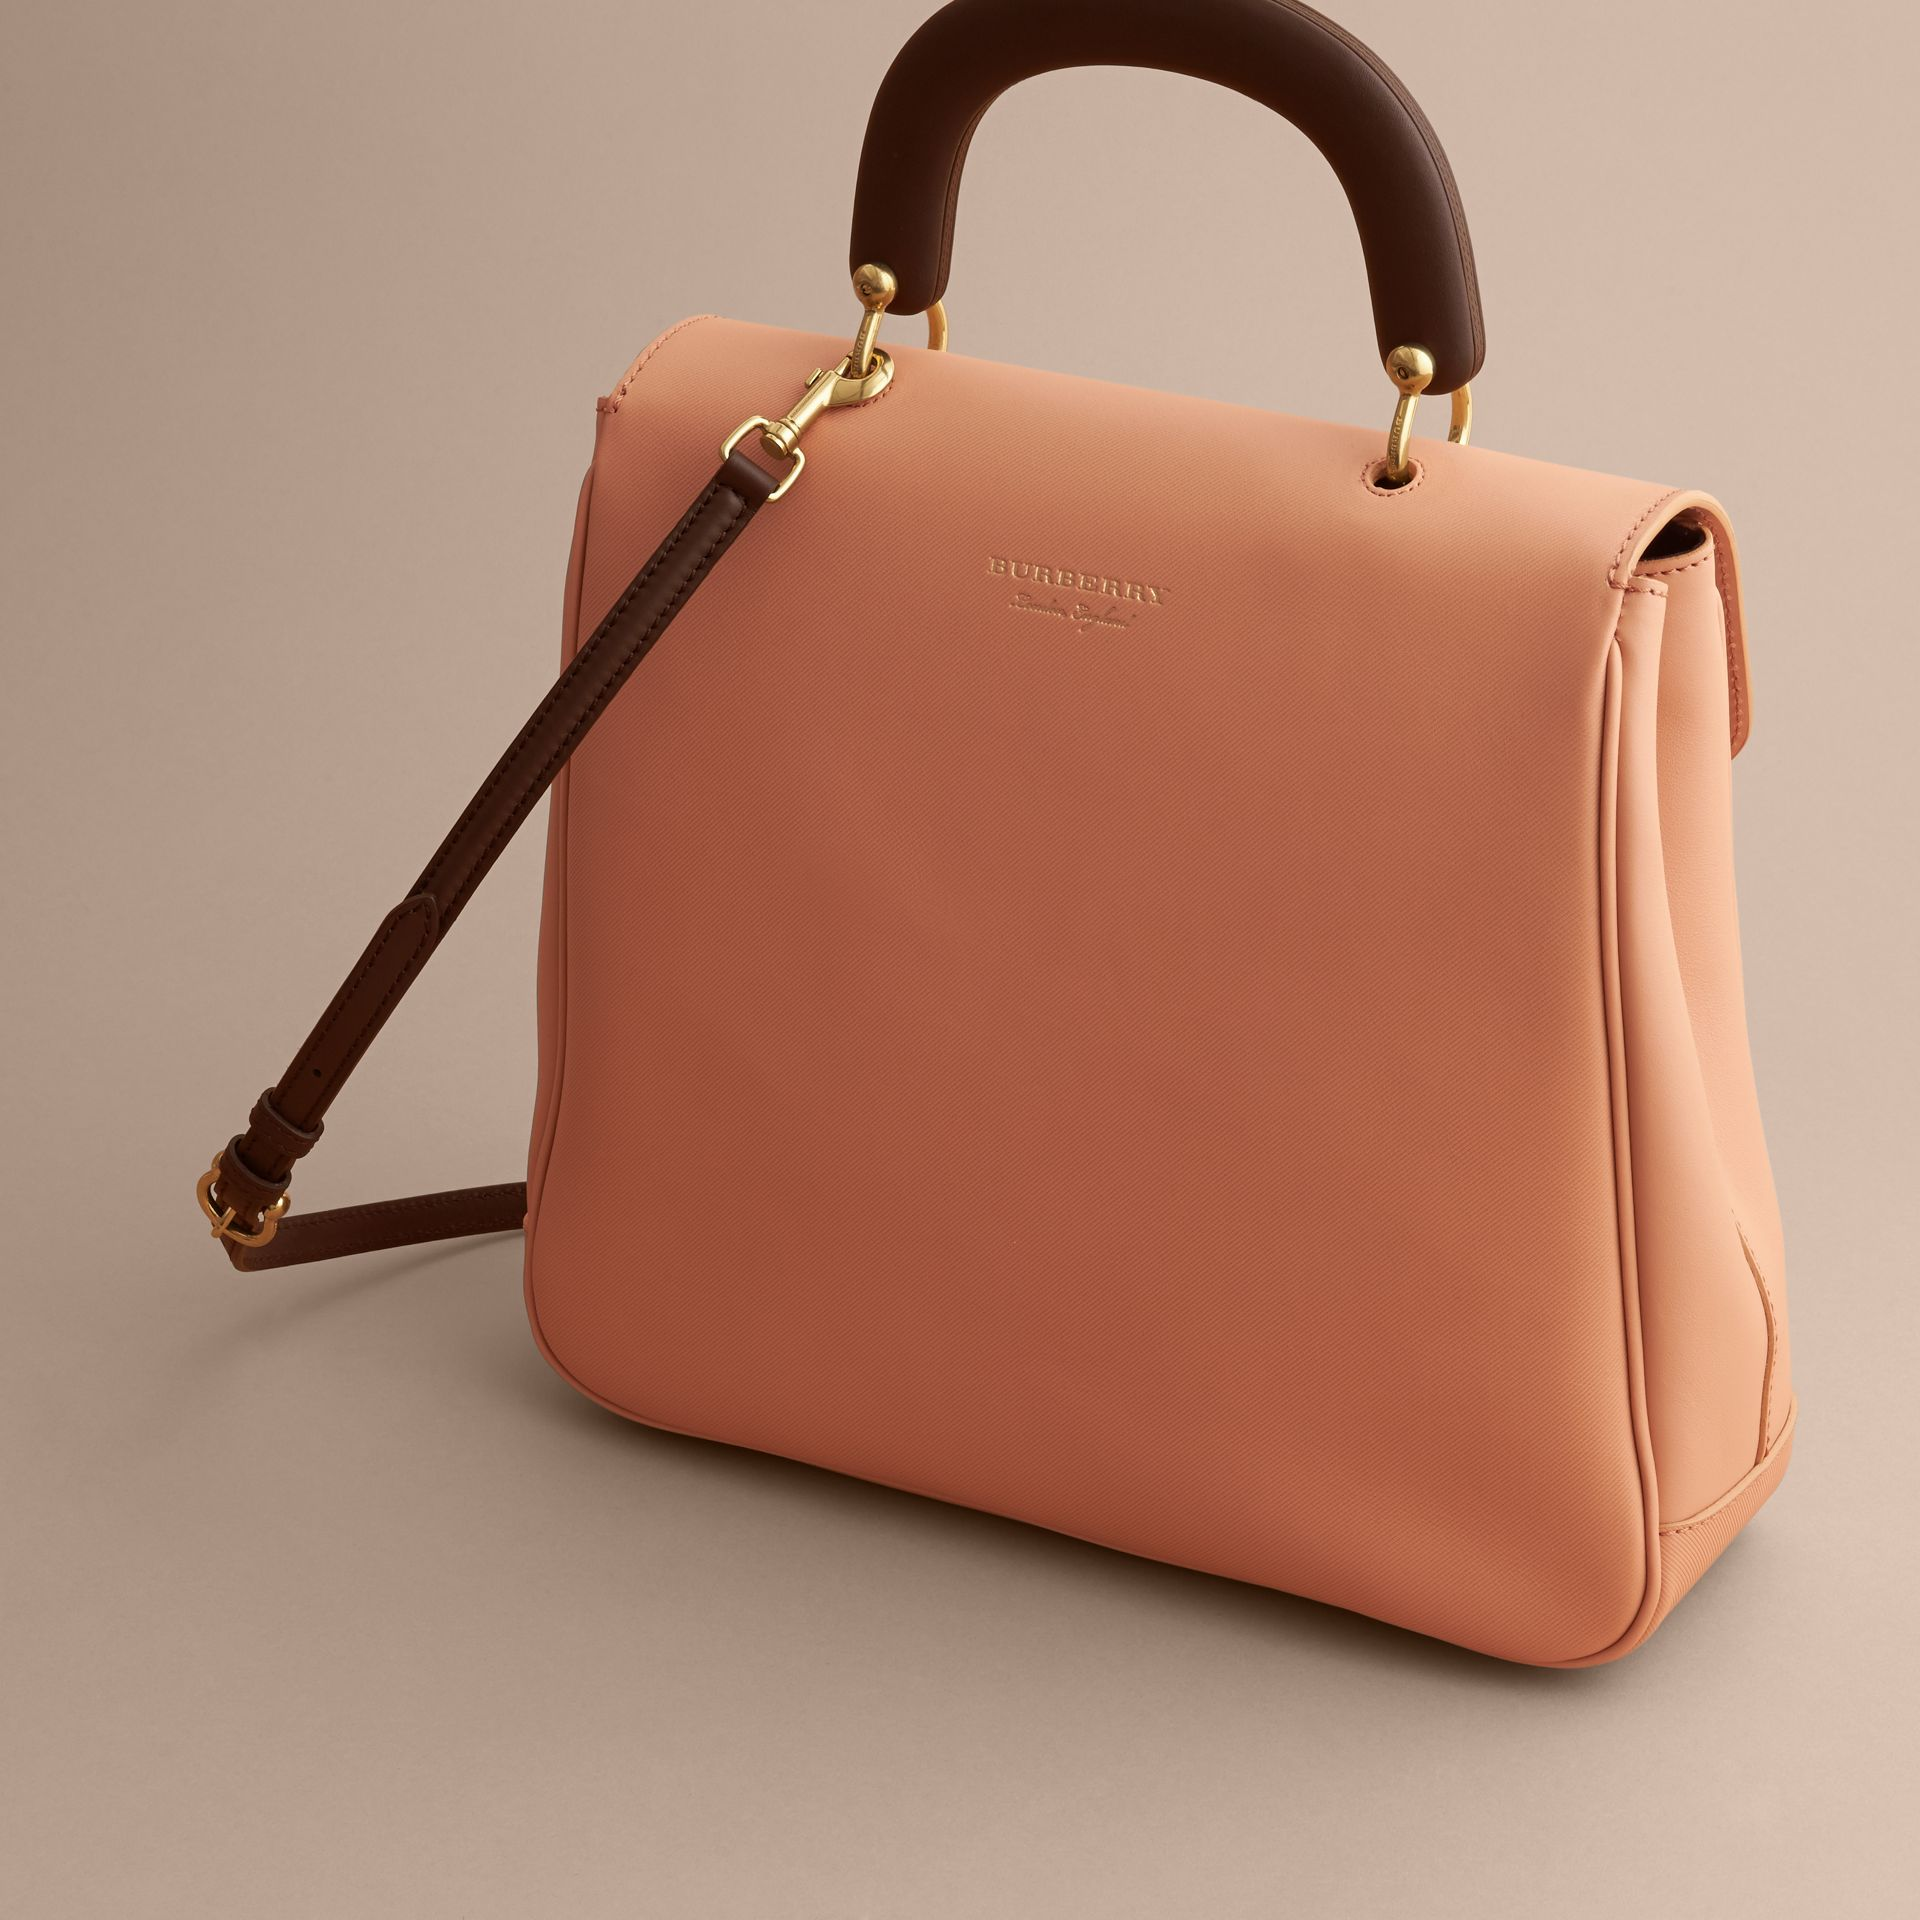 The Large DK88 Top Handle Bag in Pale Clementine - Women | Burberry - gallery image 6